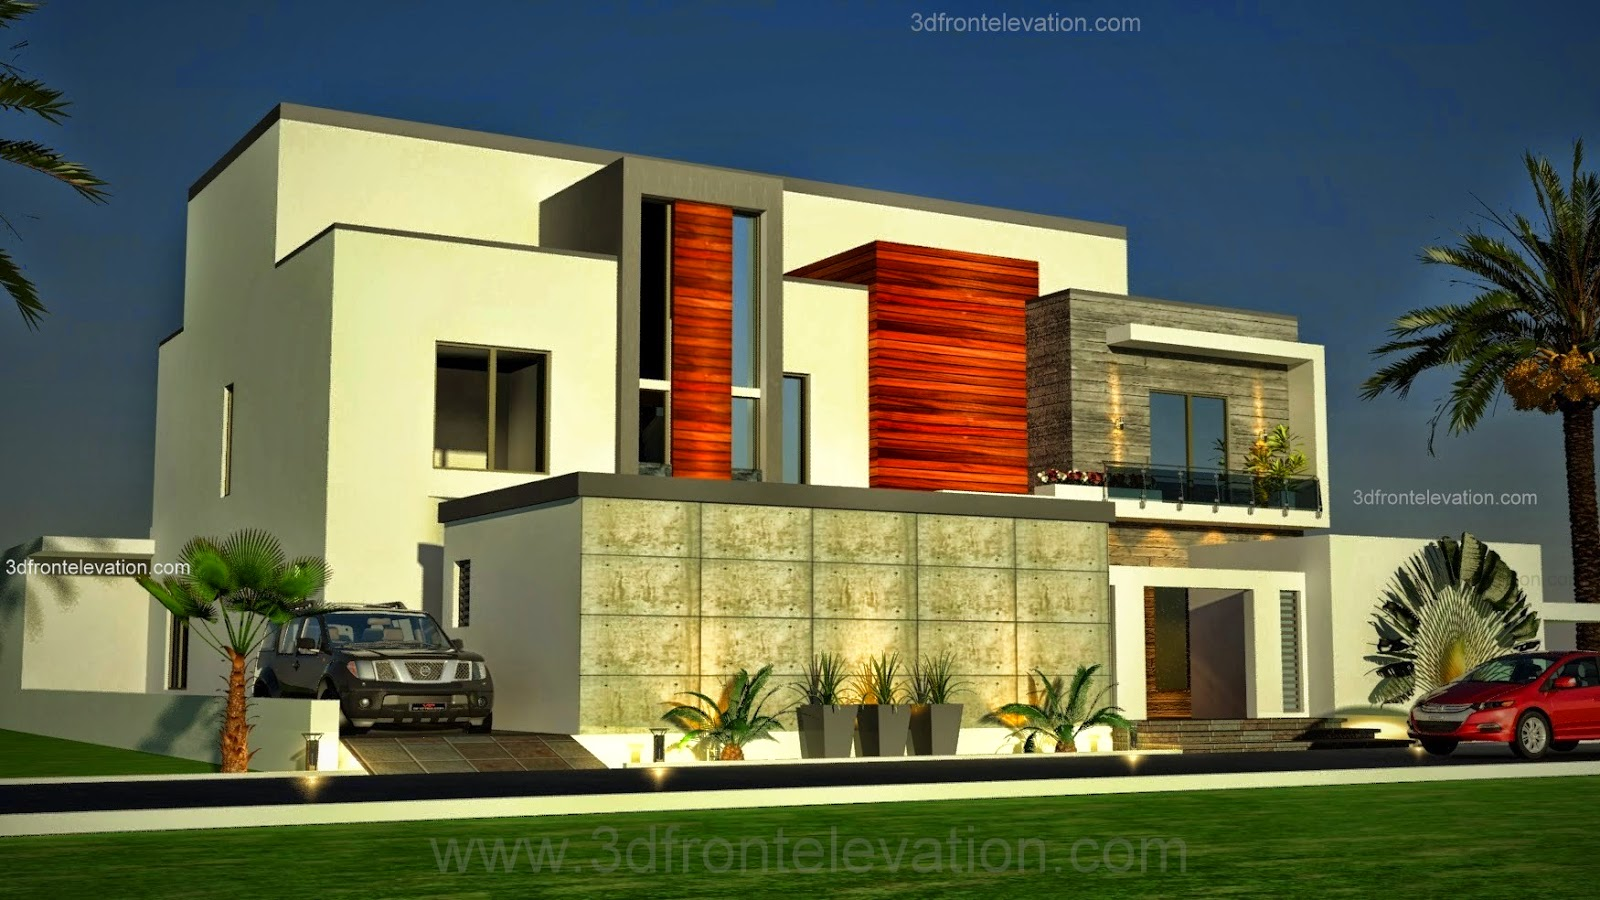 Front Elevation Of Modern Houses : D front elevation february